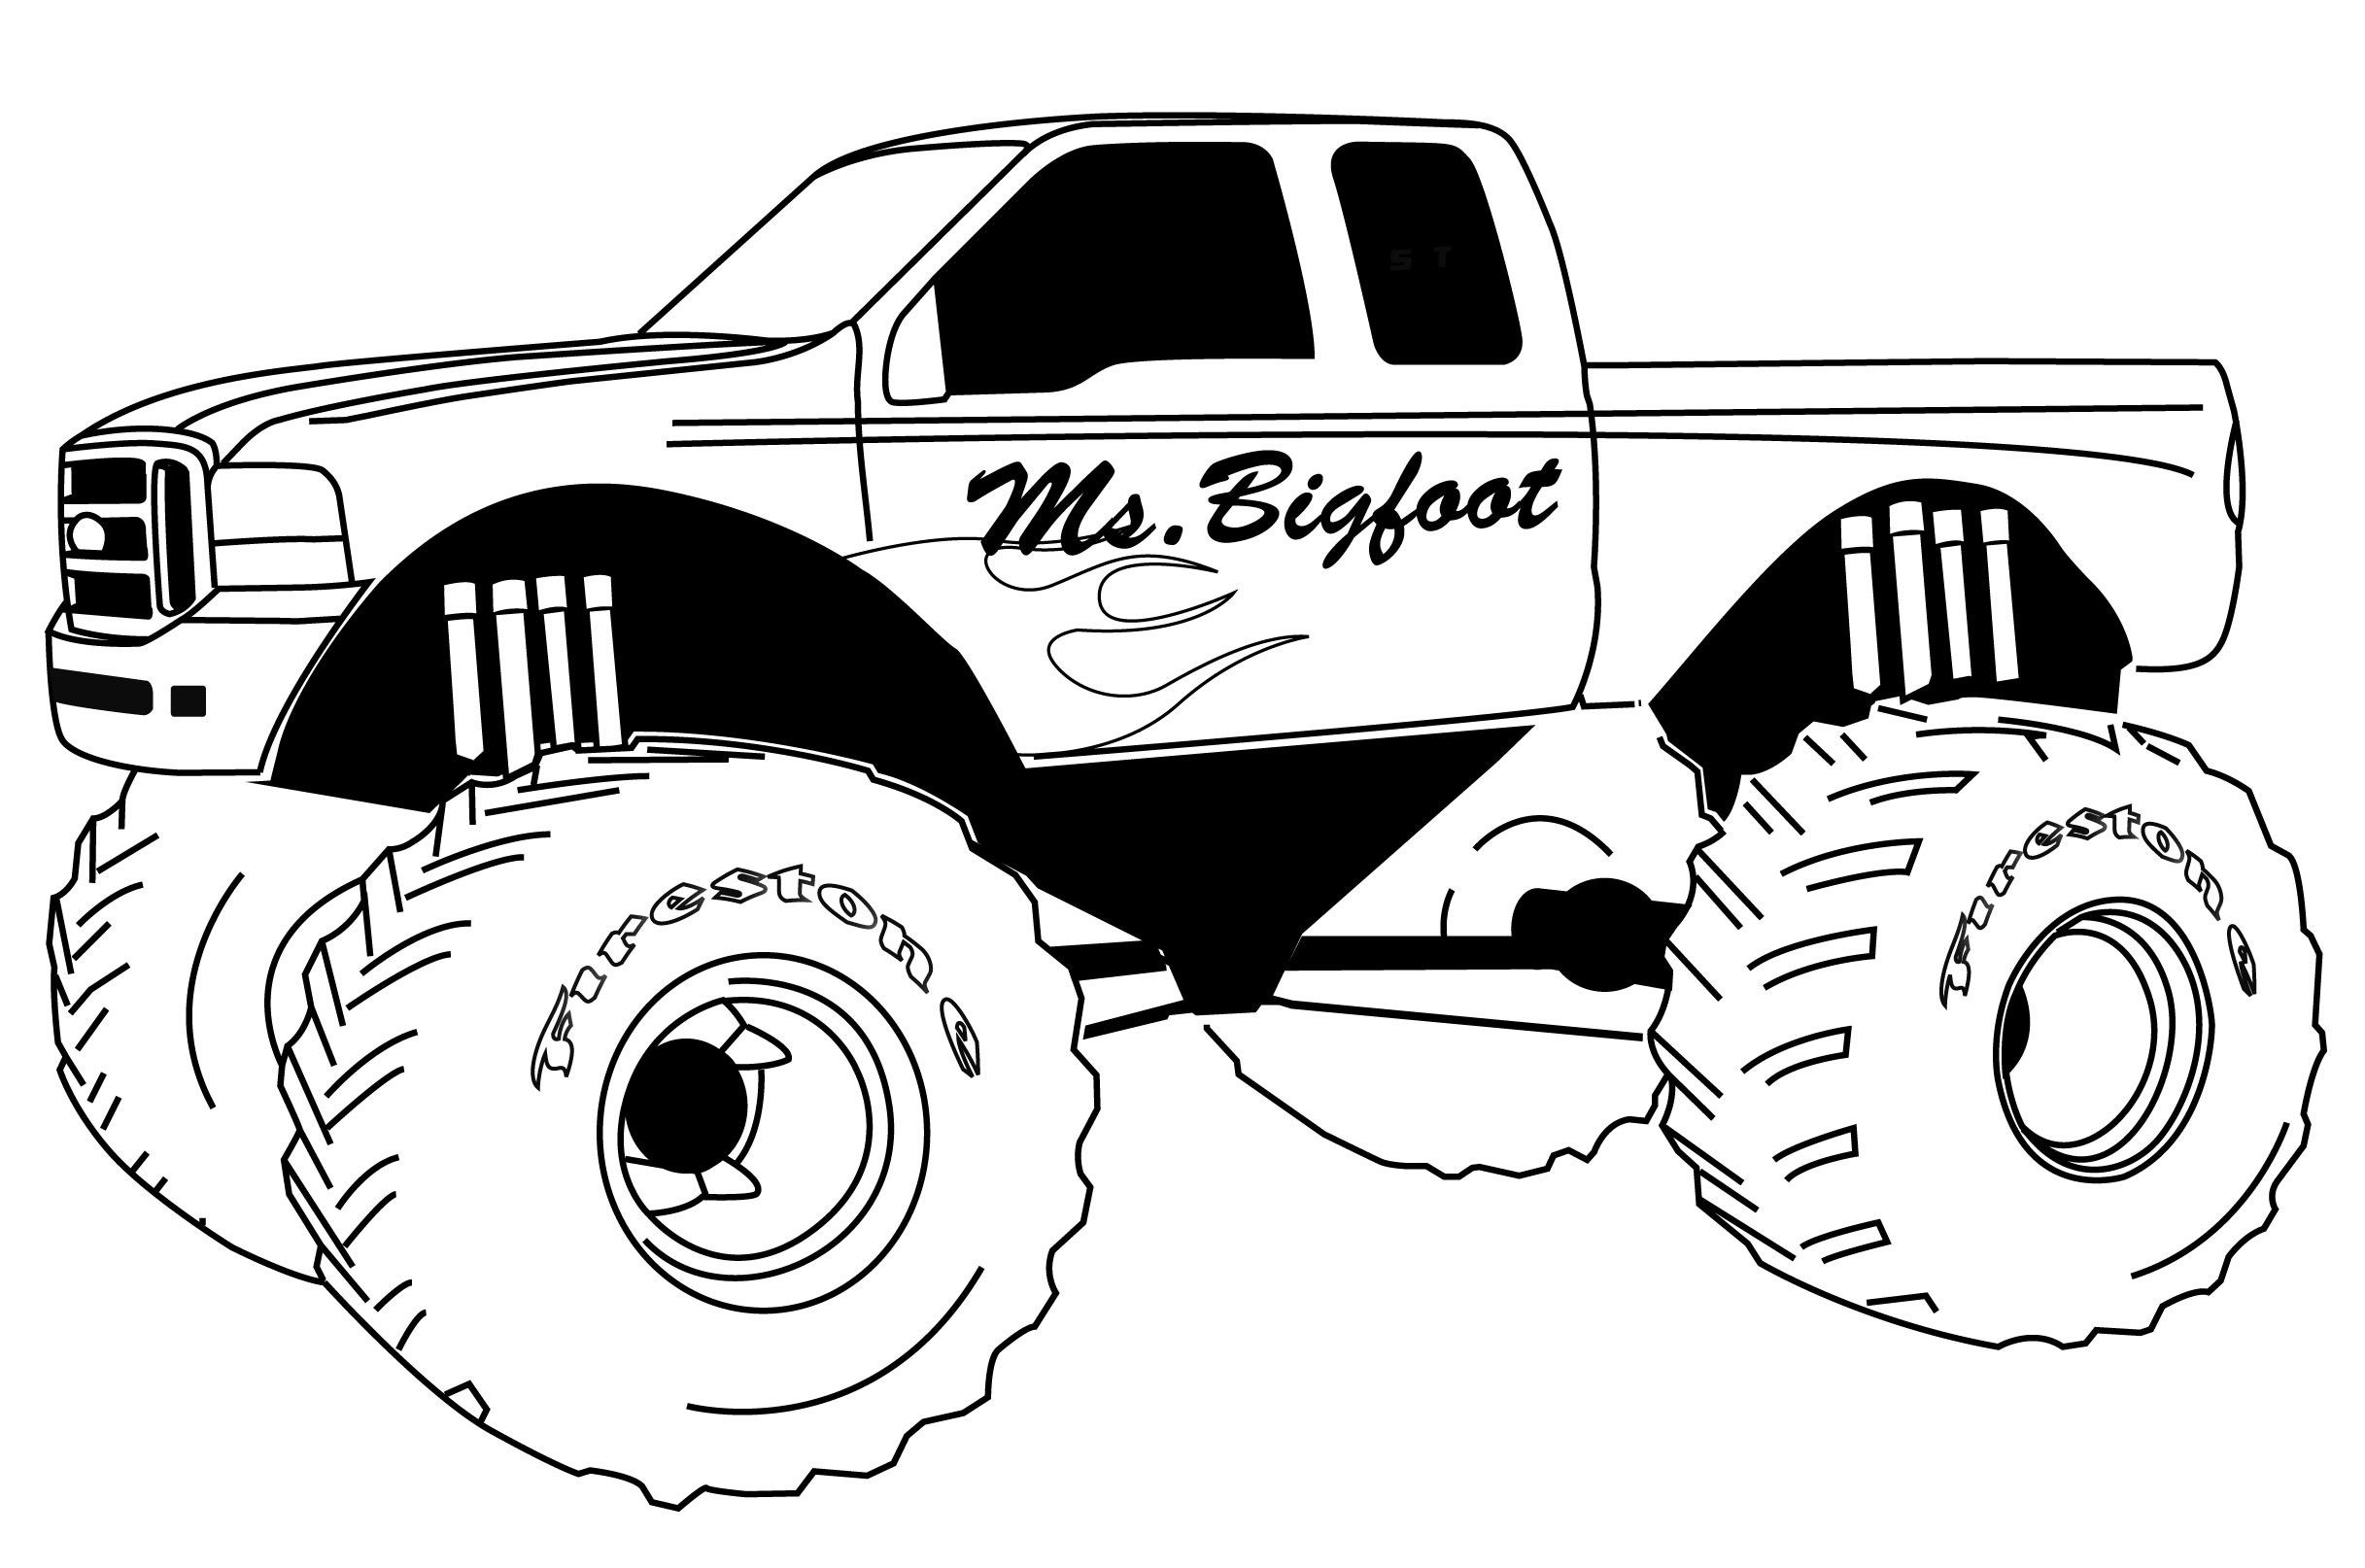 7 images of monster truck coloring pages free bigfoot monster truck coloring pages bigfoot monster truck coloring pages and monster truck coloring pages - Monster Truck Mater Coloring Page